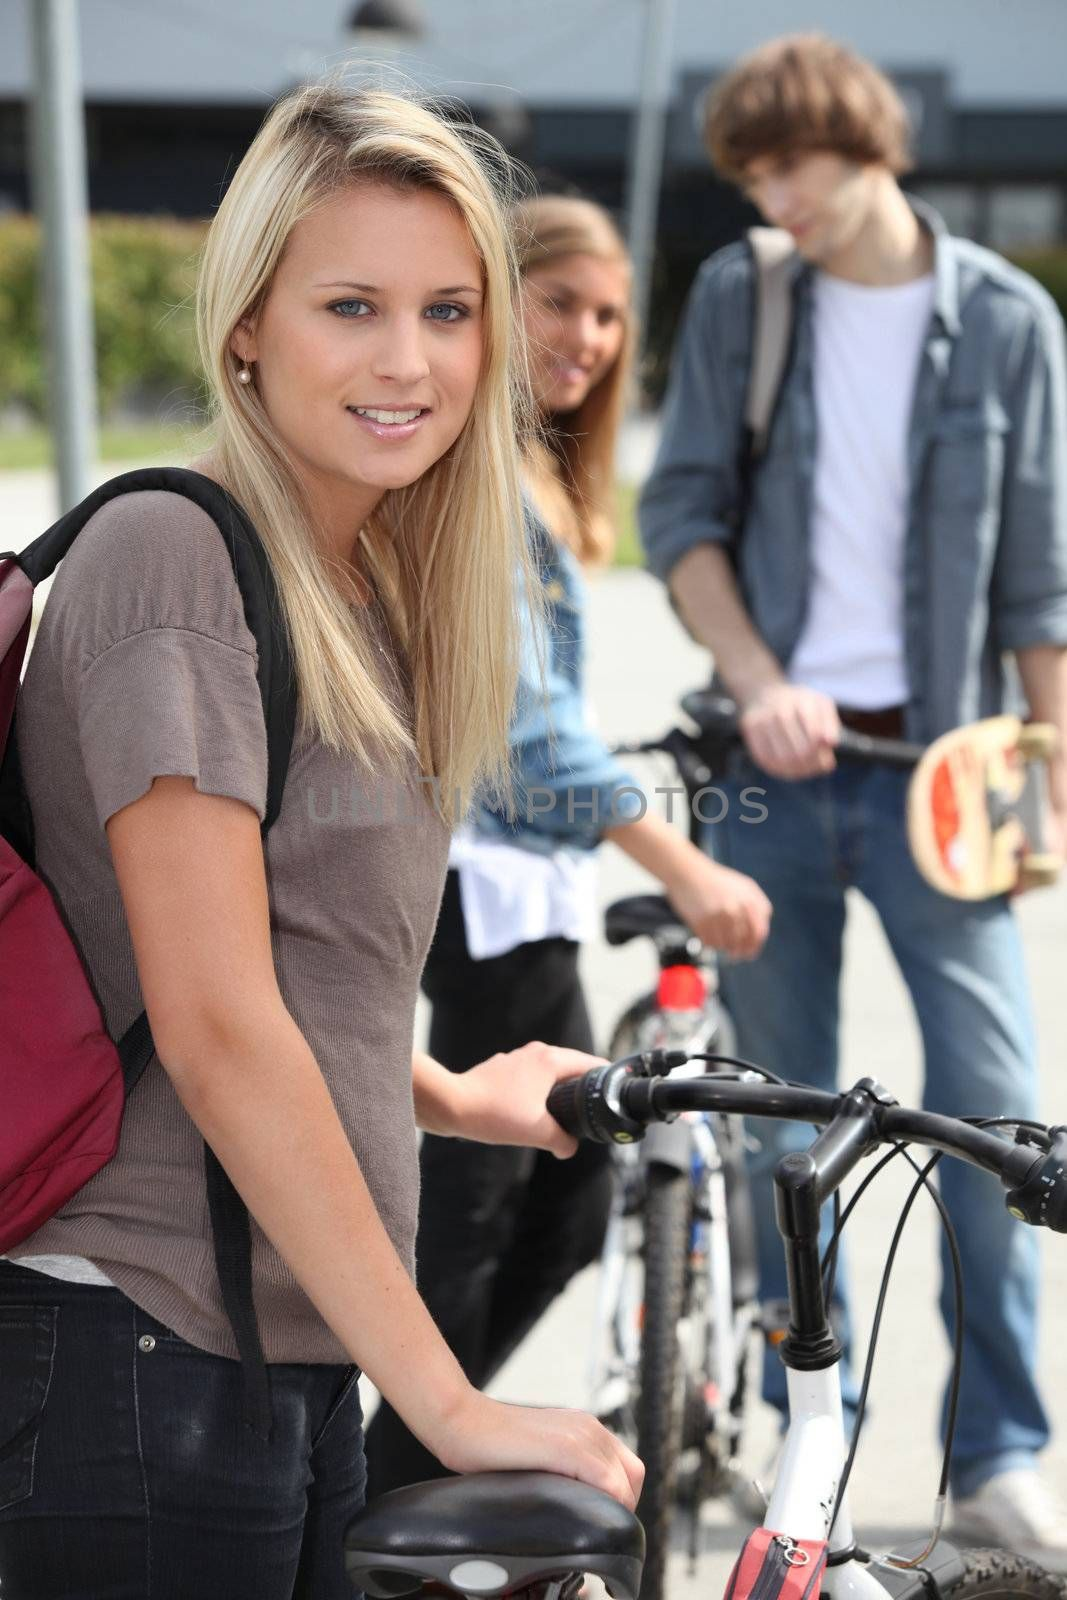 Blond female teenager stood by bicycle friends in background